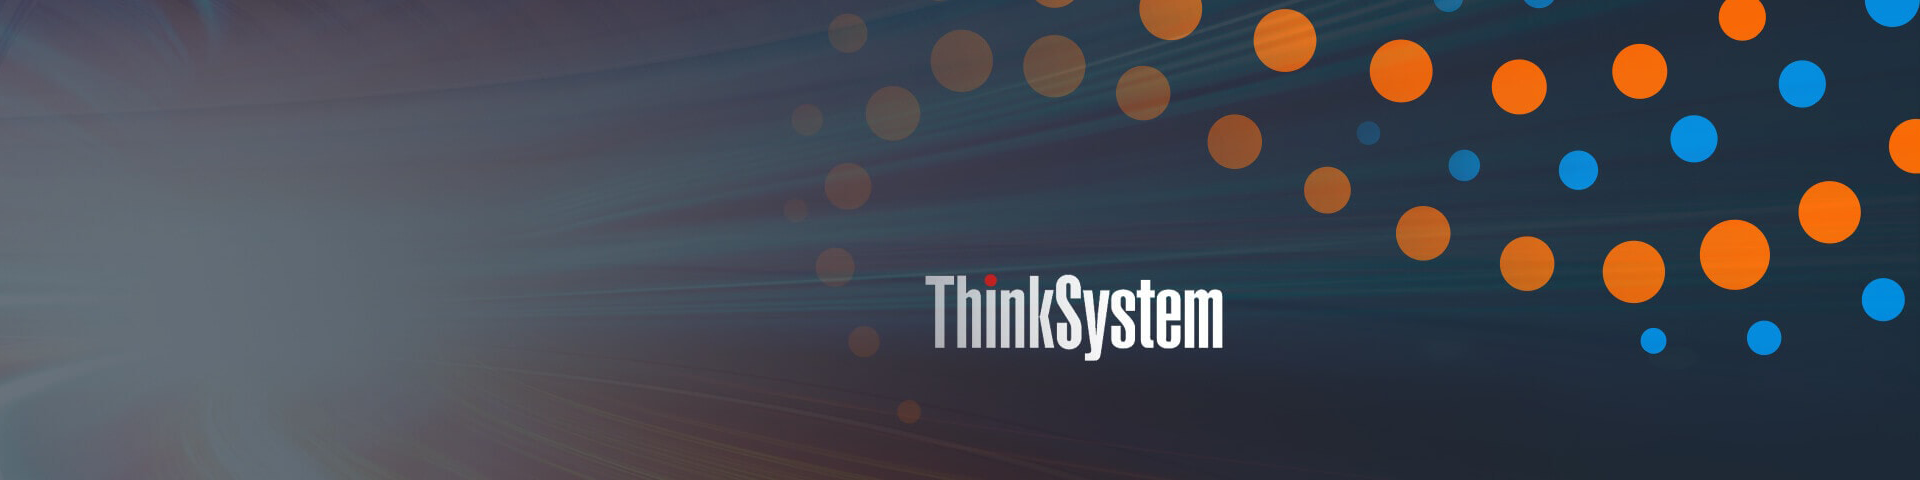 post lenovo thinksystem networking